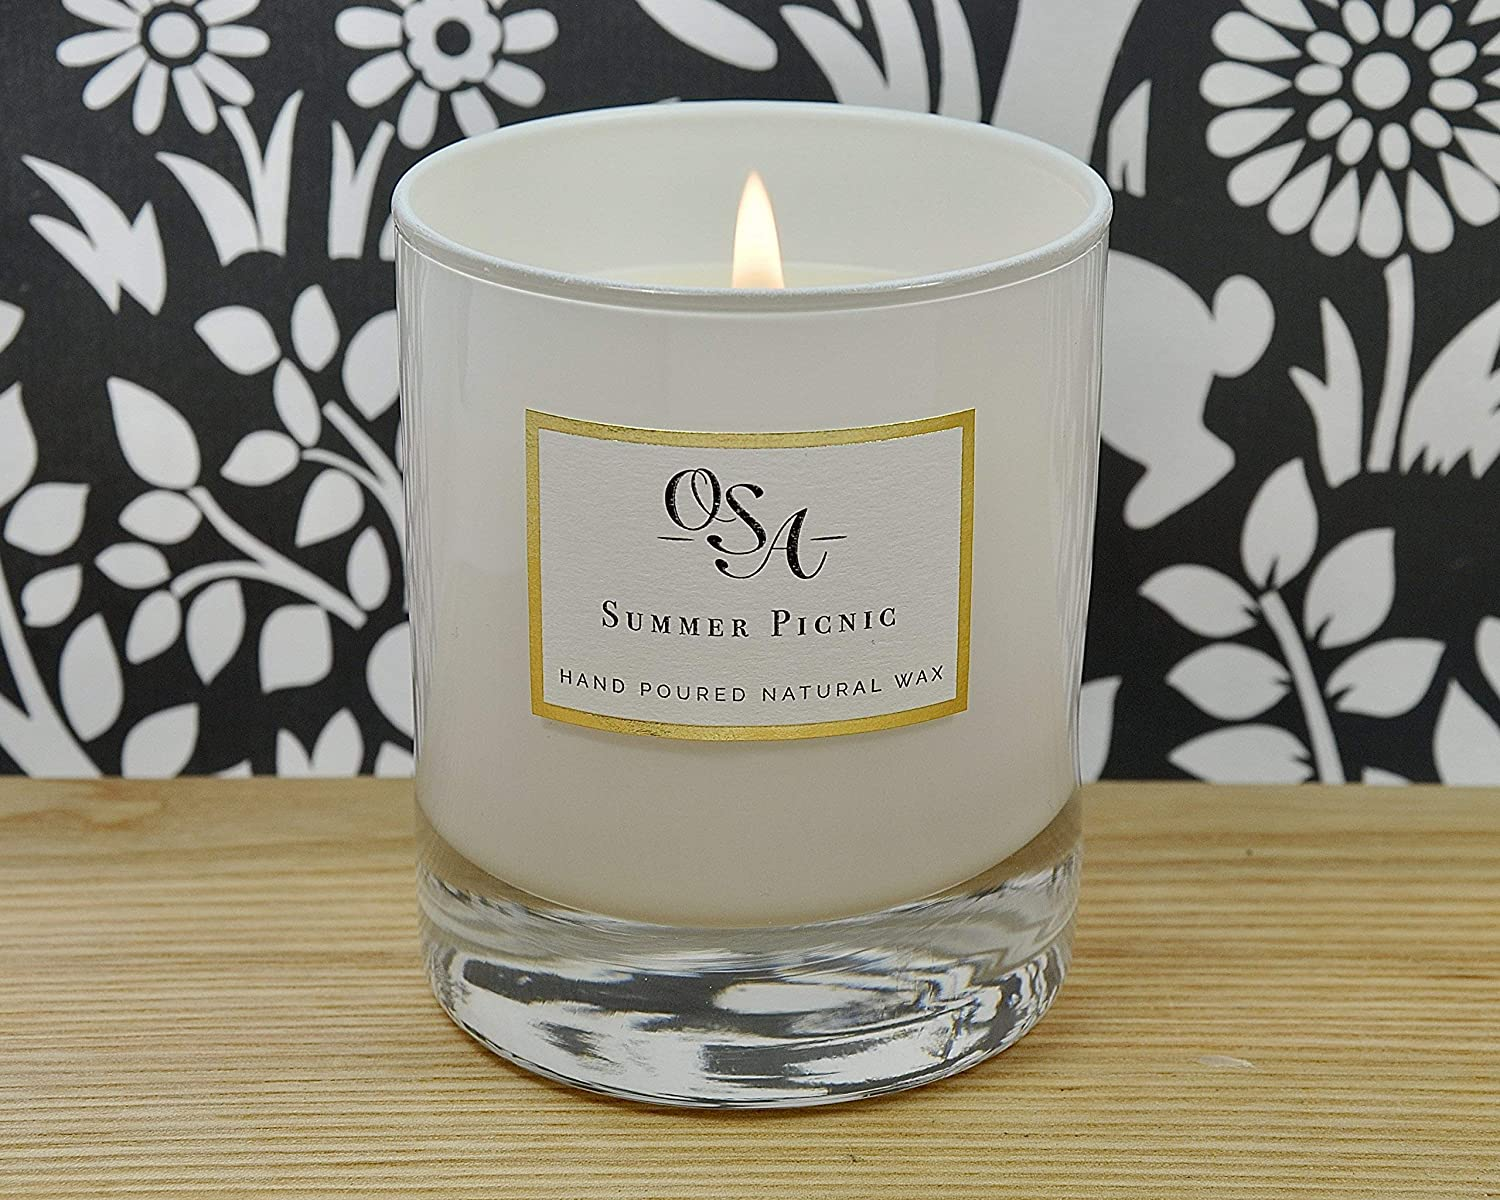 Luxury Scented Candle with Citronella essential oil; Enjoy outdoor living and entertaining with our Summer Picnic handmade soy candle